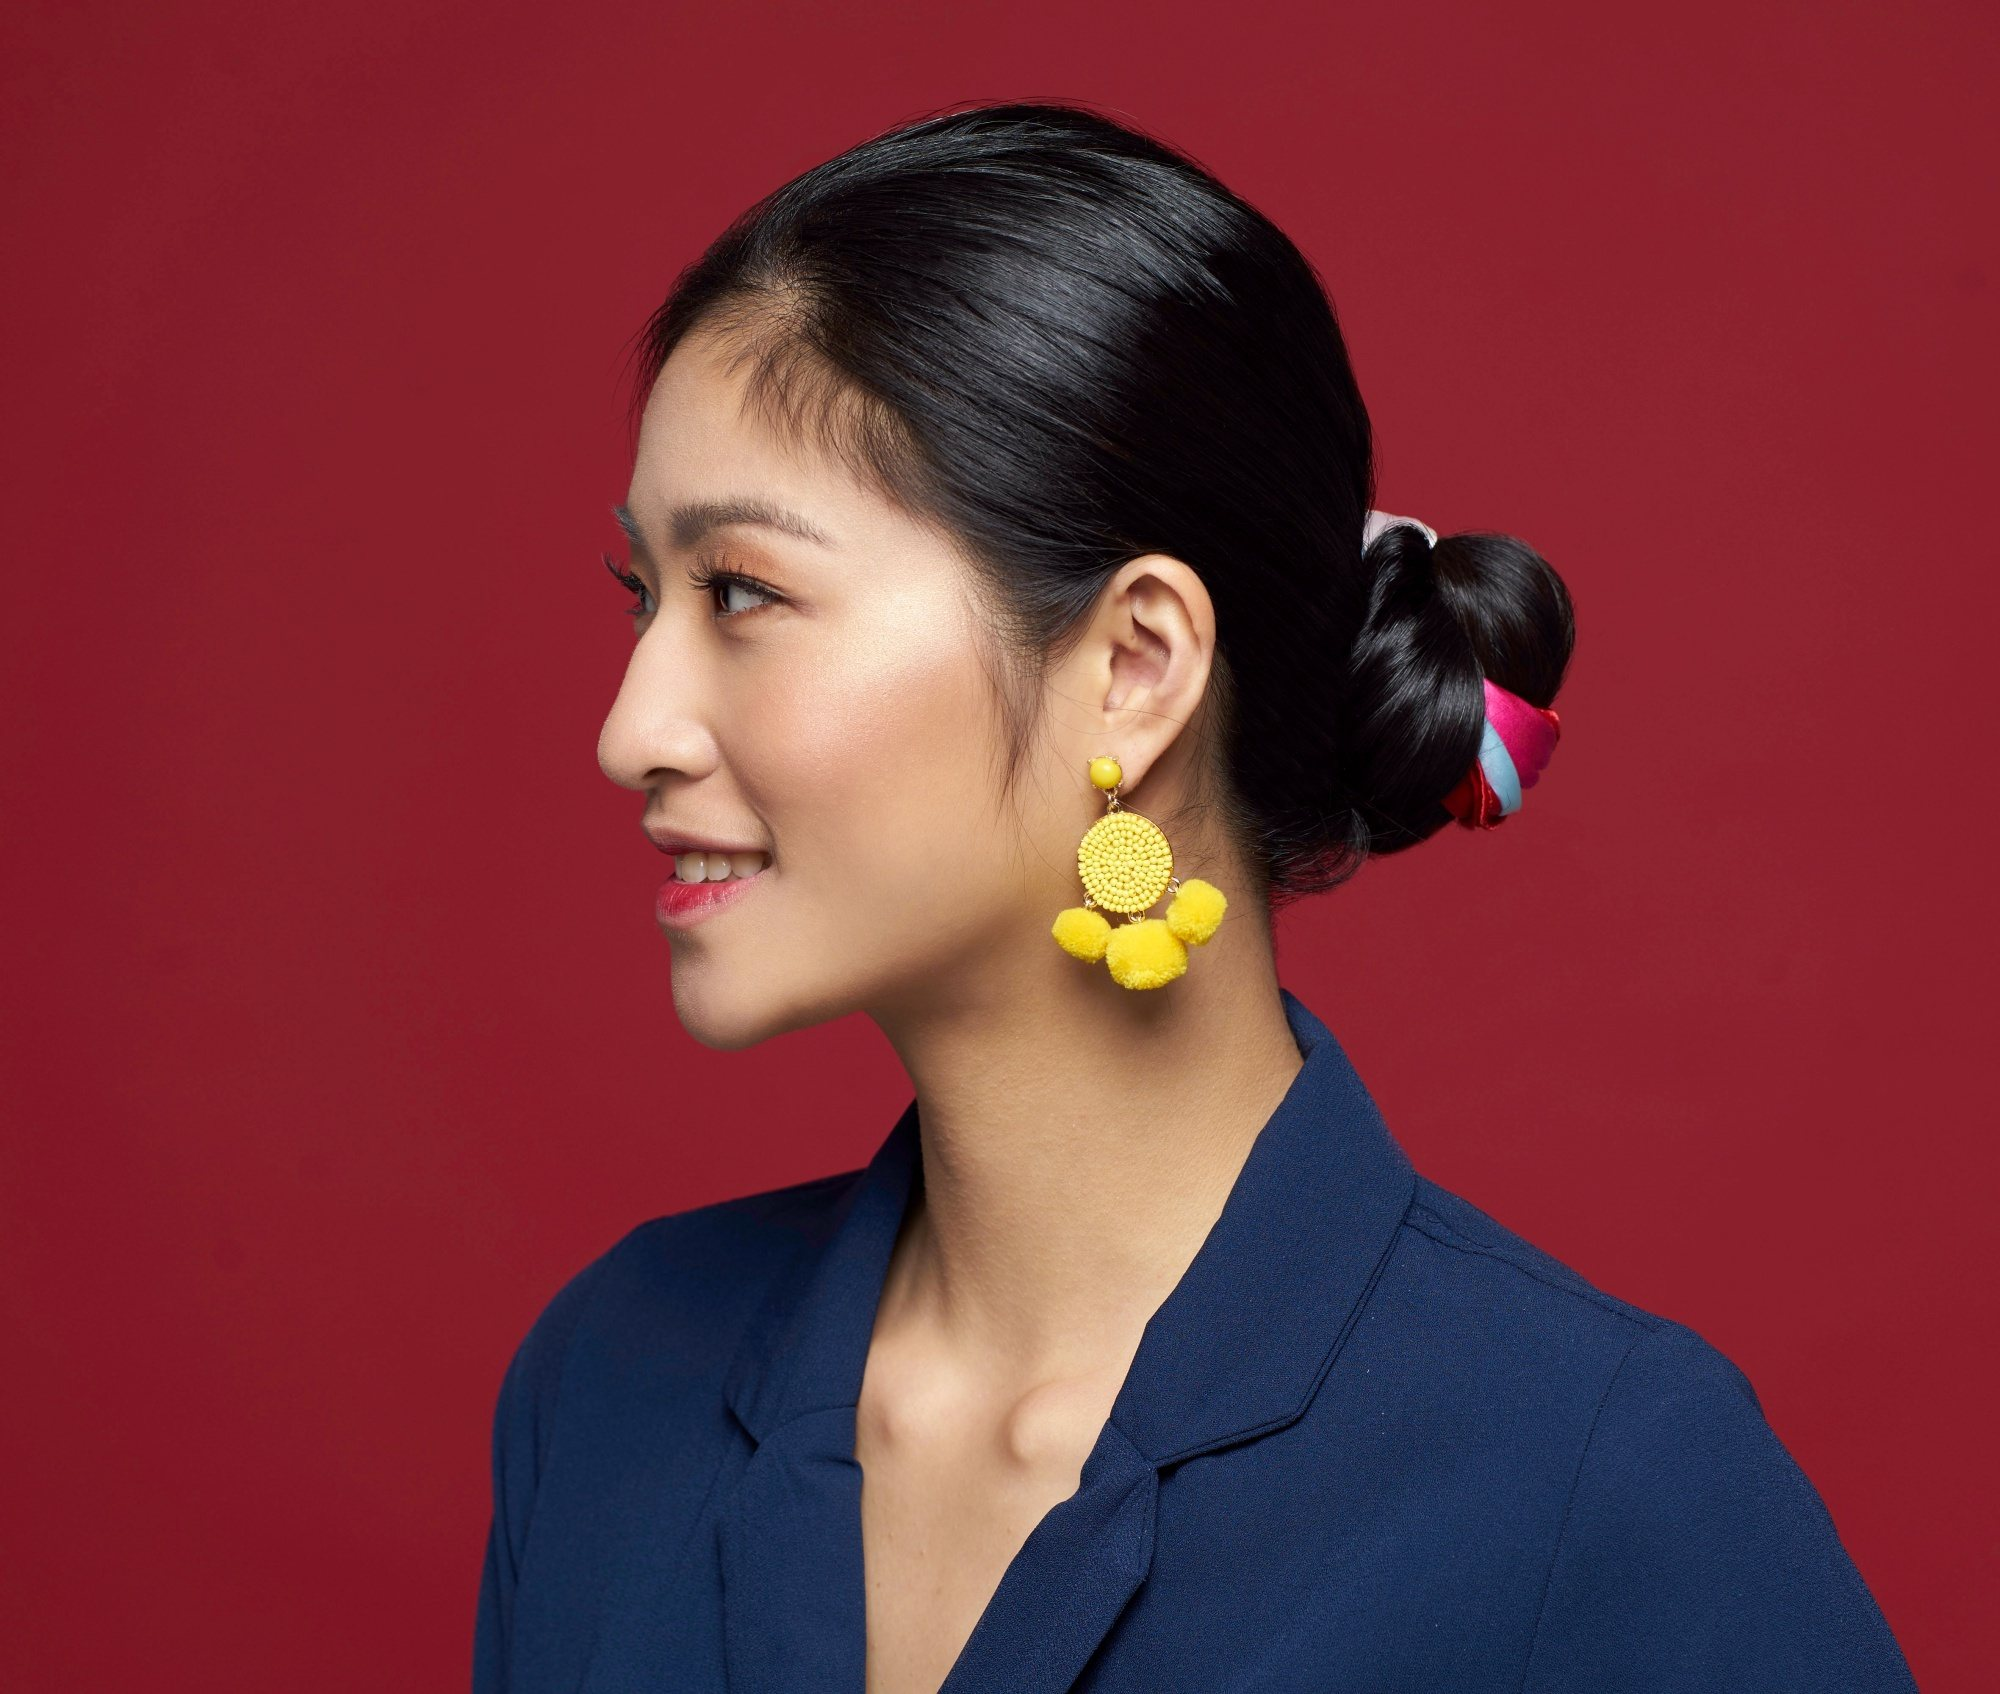 Casual hairstyles: Closeup side view of an Asian woman with long black hair in a scarf bun wearing a blue blouse